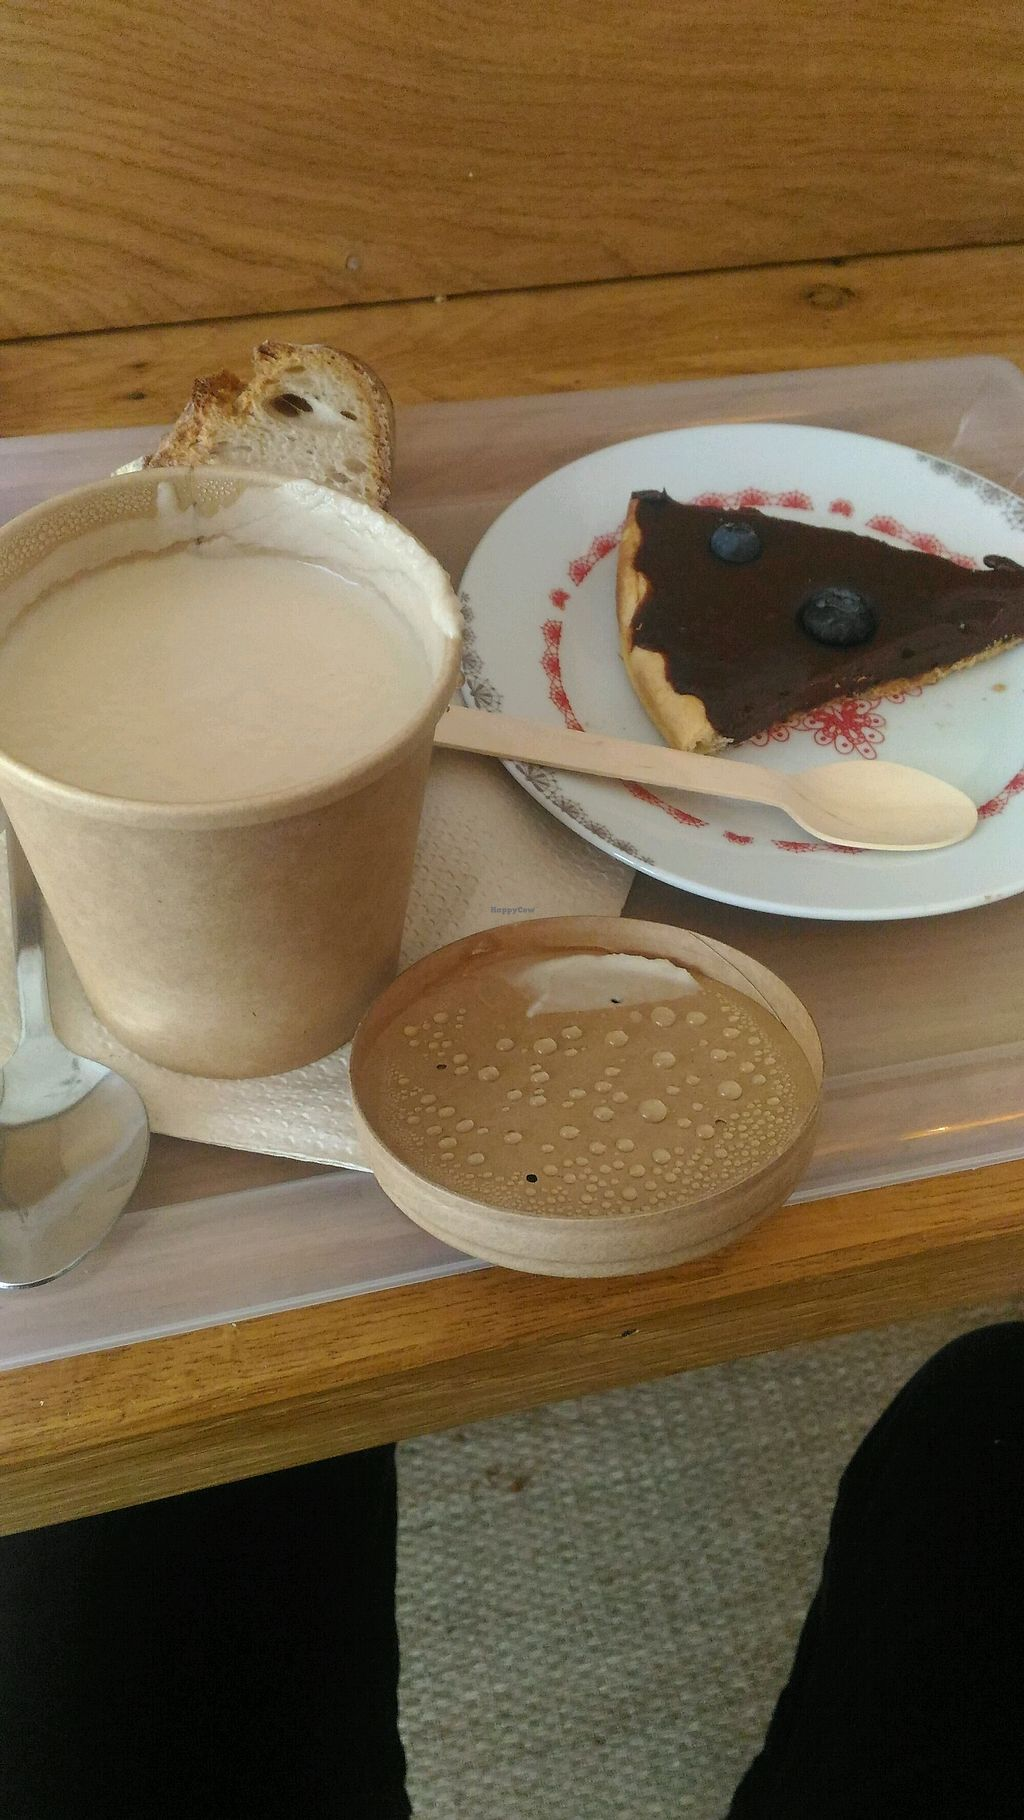 """Photo of Pause  by <a href=""""/members/profile/Paul%C3%ADna%C5%BD%C3%A1kovsk%C3%A1"""">PaulínaŽákovská</a> <br/>chocolate blueberry pie and the soup of the day which is always vegan:) <br/> March 24, 2018  - <a href='/contact/abuse/image/96265/375076'>Report</a>"""